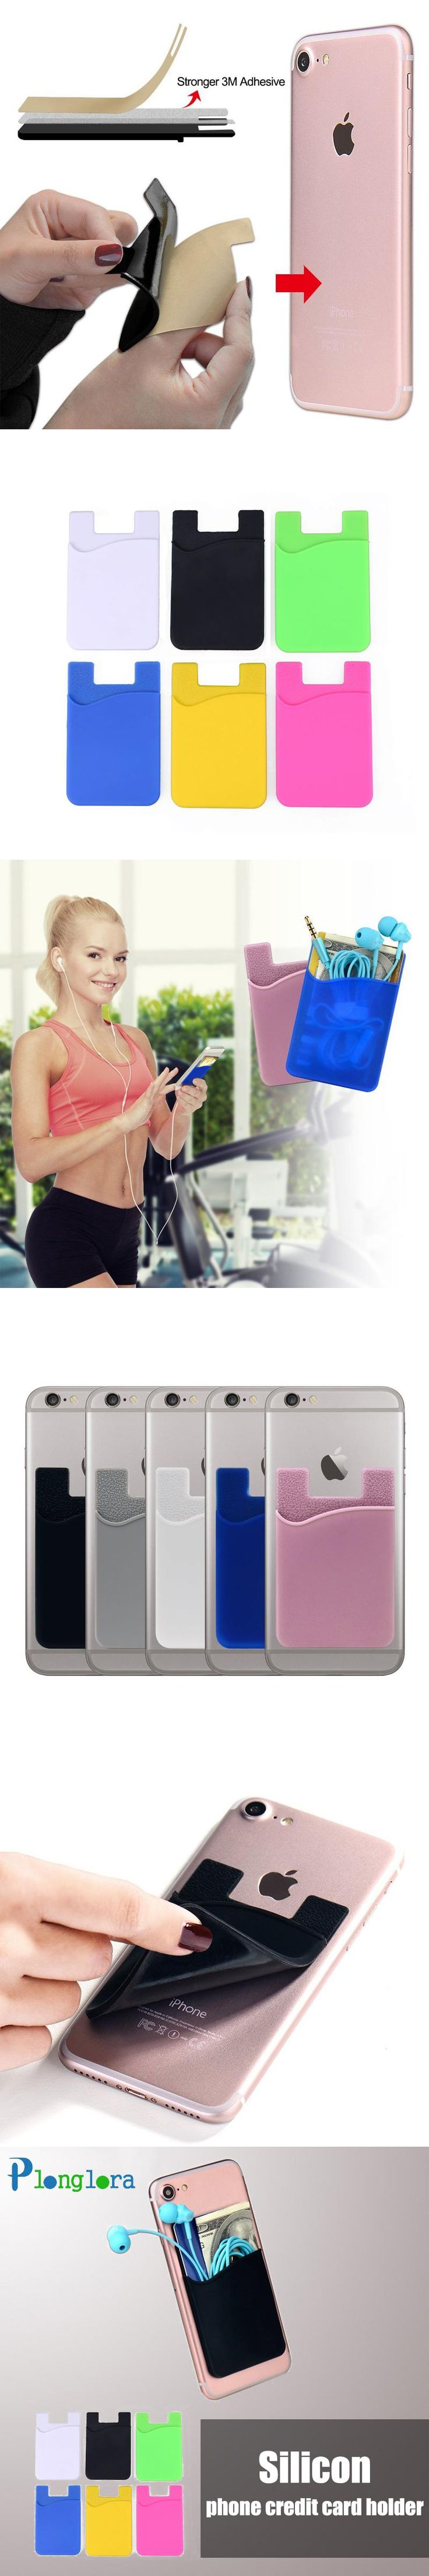 Self Adhesive Credit Card Holder Sticker Smart Wallet Pouch Sleeve Universal for iPhone 6 6S Plus Samsung Galaxy porta tarjeta